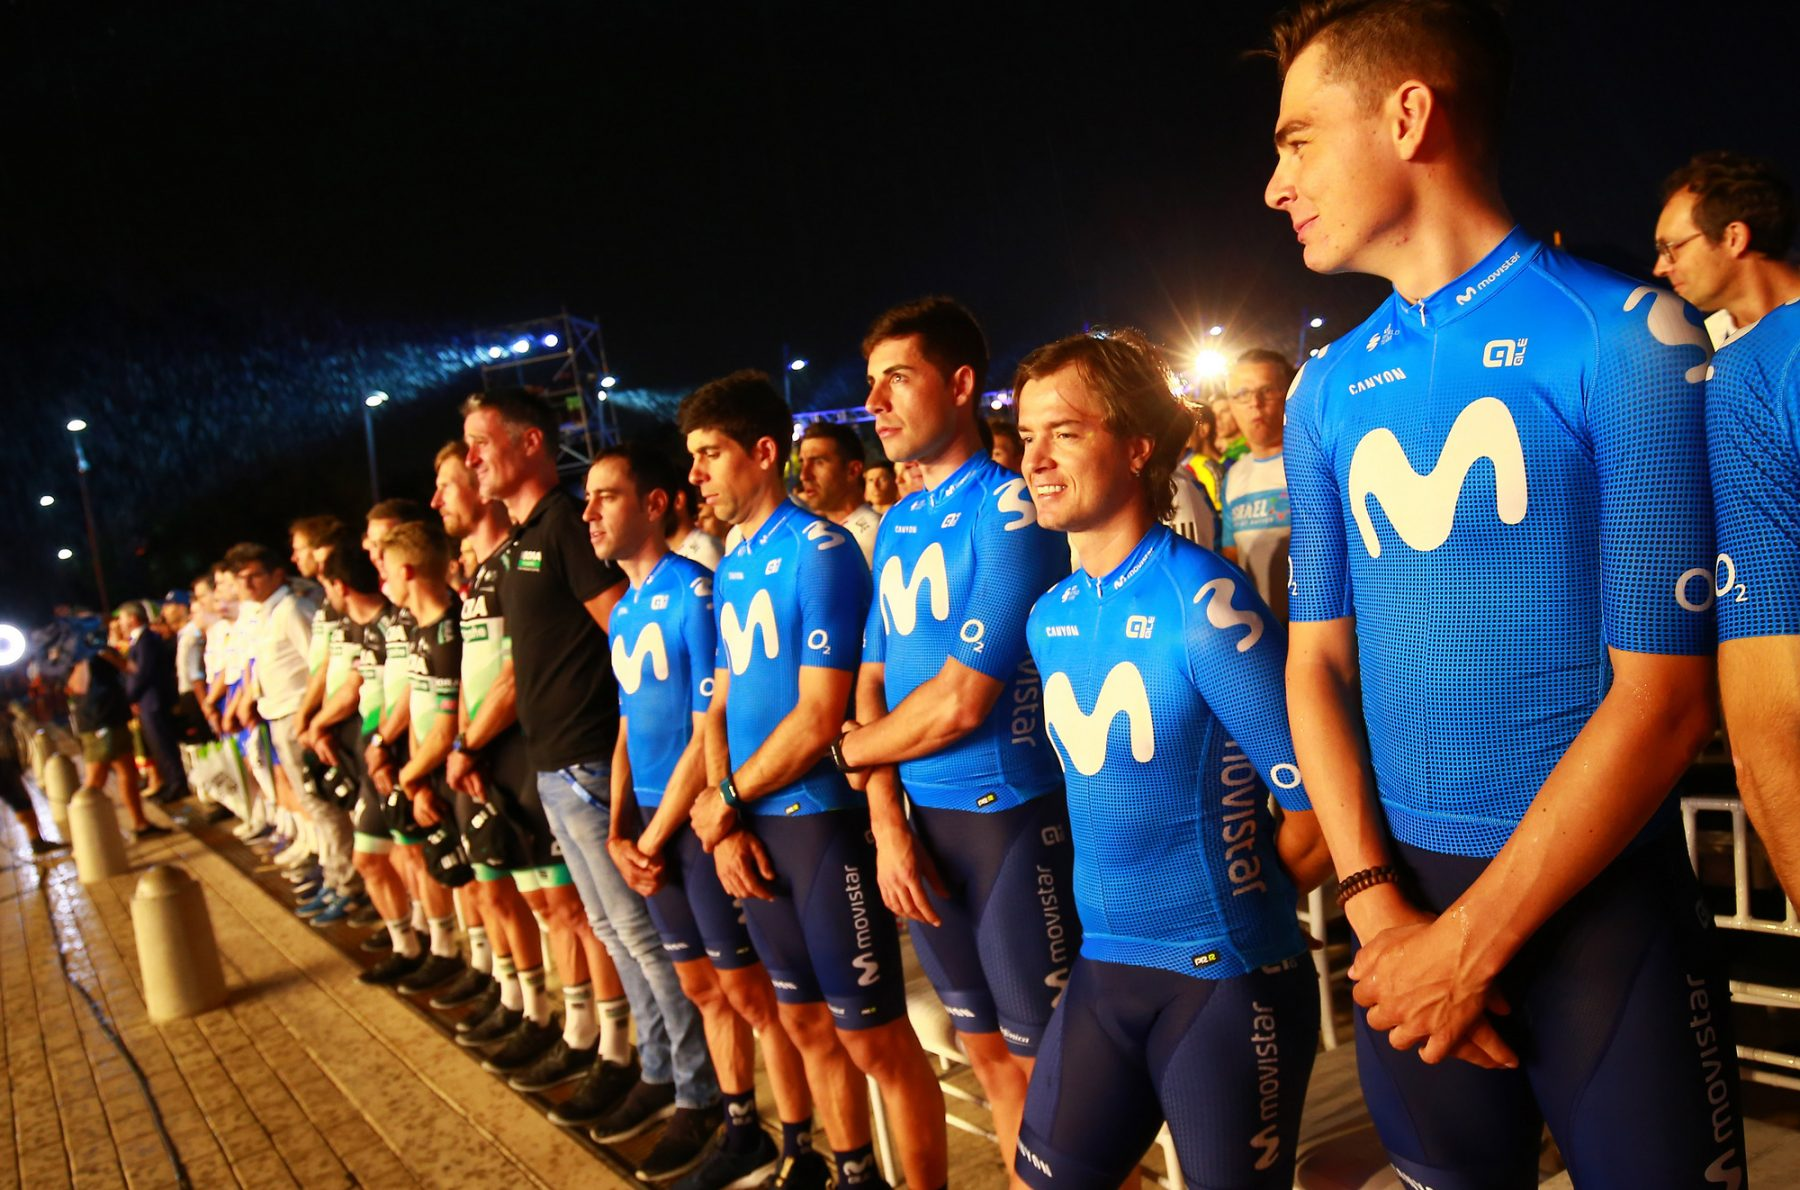 Imagen de la noticia 'Movistar Team ready for 2020 Vuelta a San Juan'